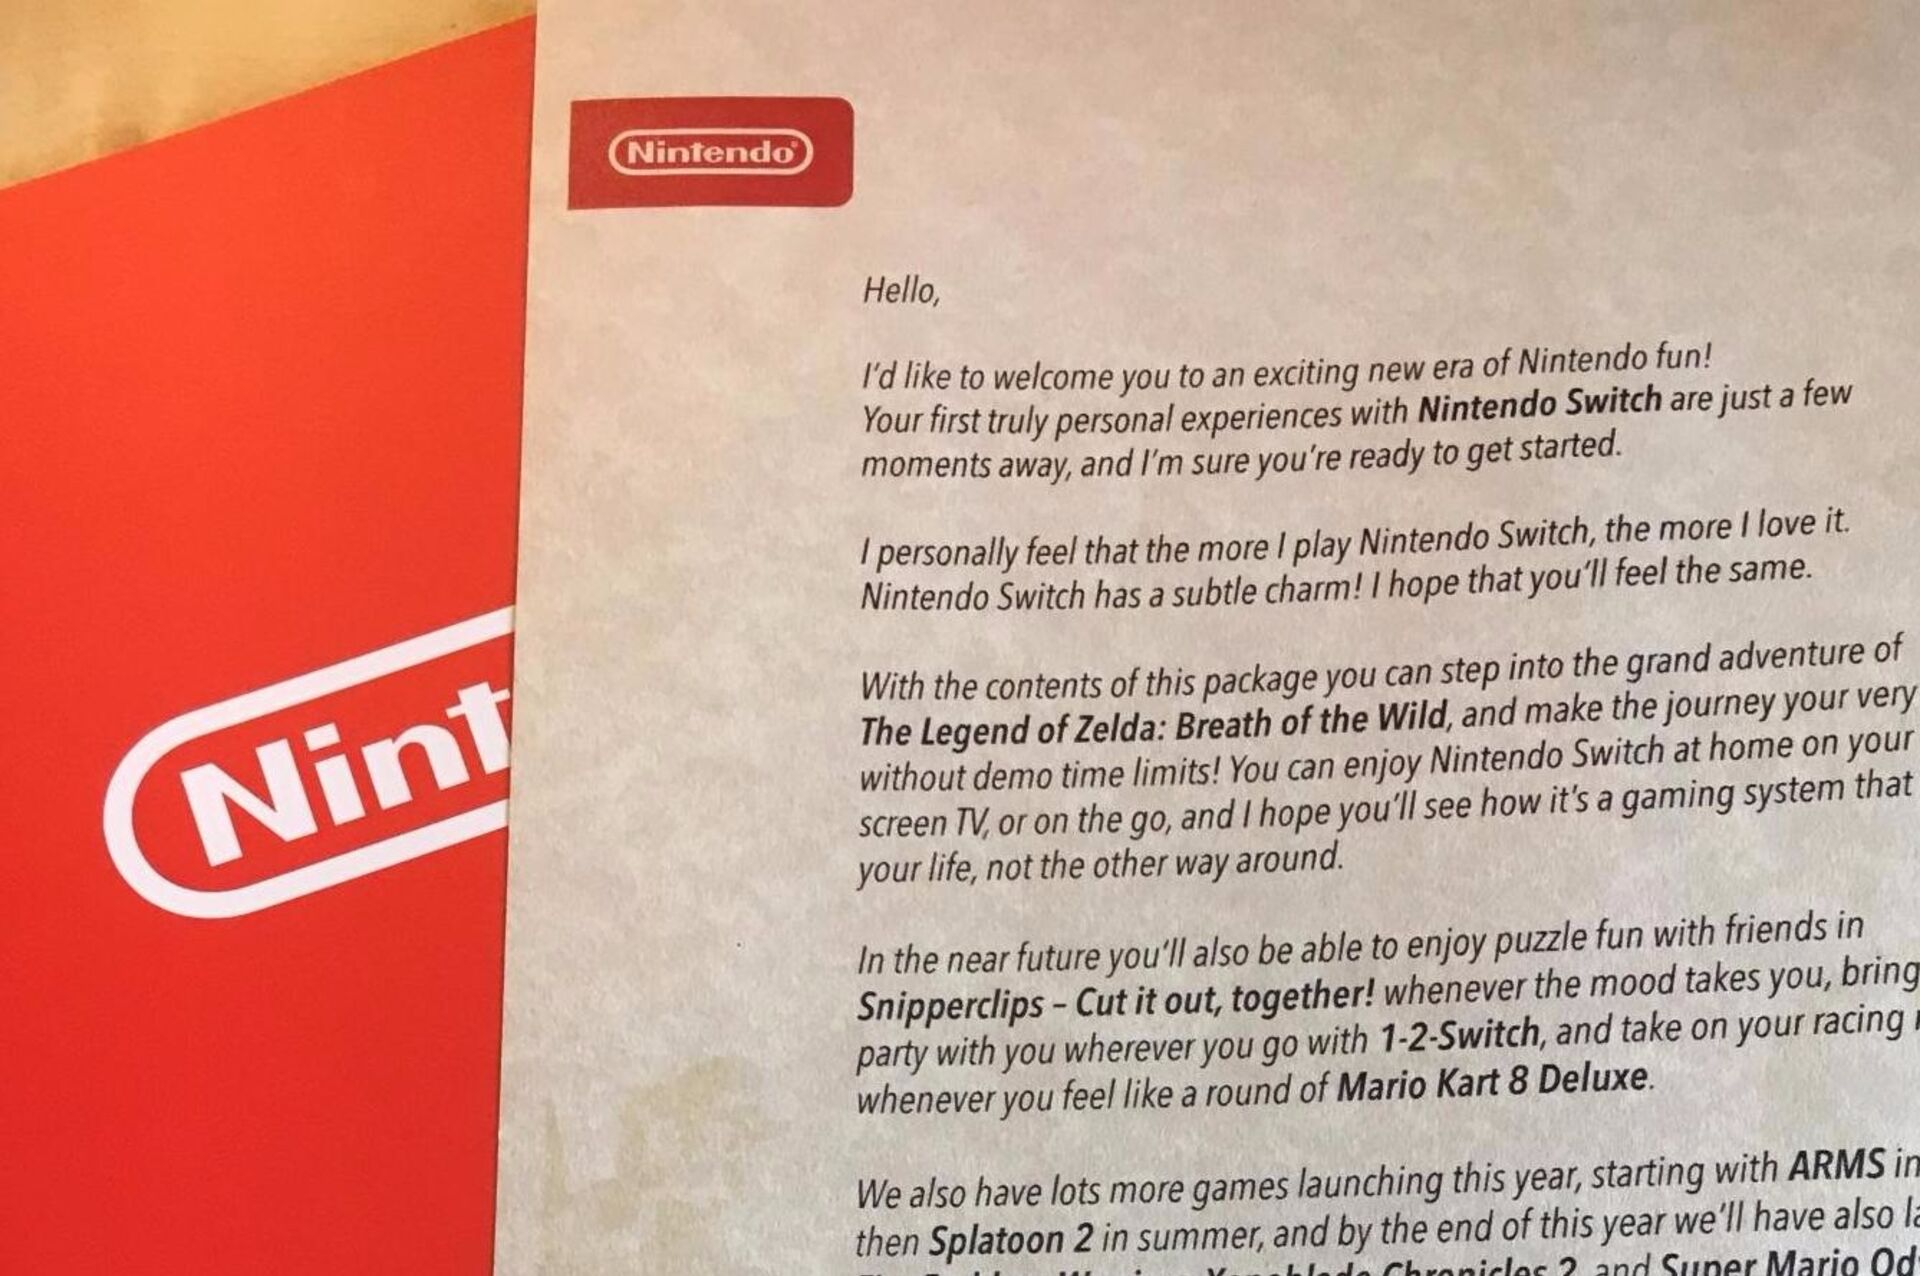 Nintendo's Switch media kit includes heartfelt messages from